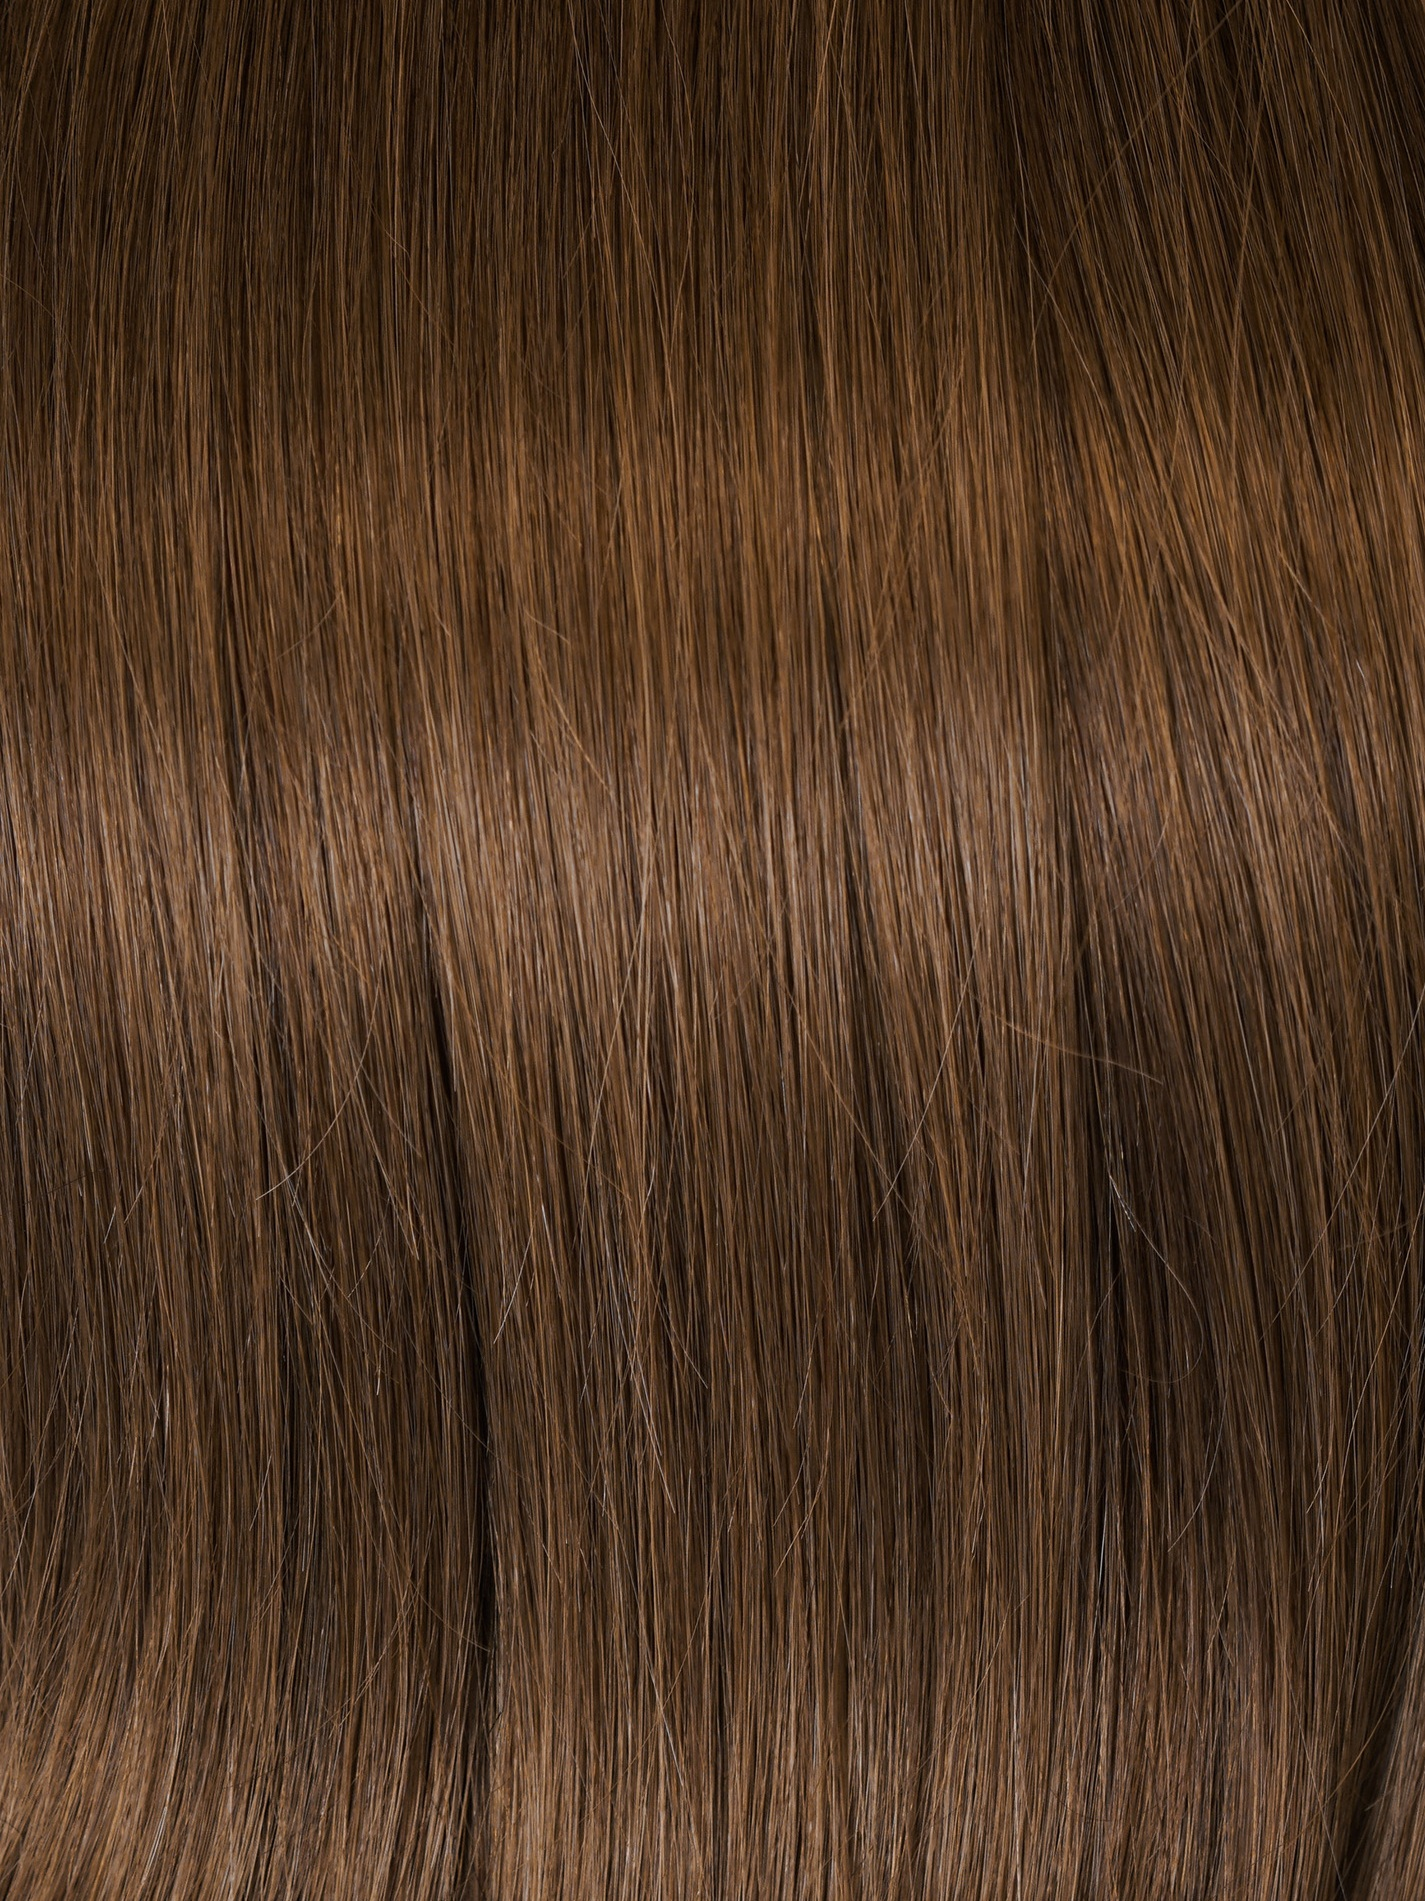 MEDIUM BROWN #4 - Hint of warm gold undertones give an extra pop of sunshine in every weft for a stunning transformation that will have you feeling summer-ready all year long.